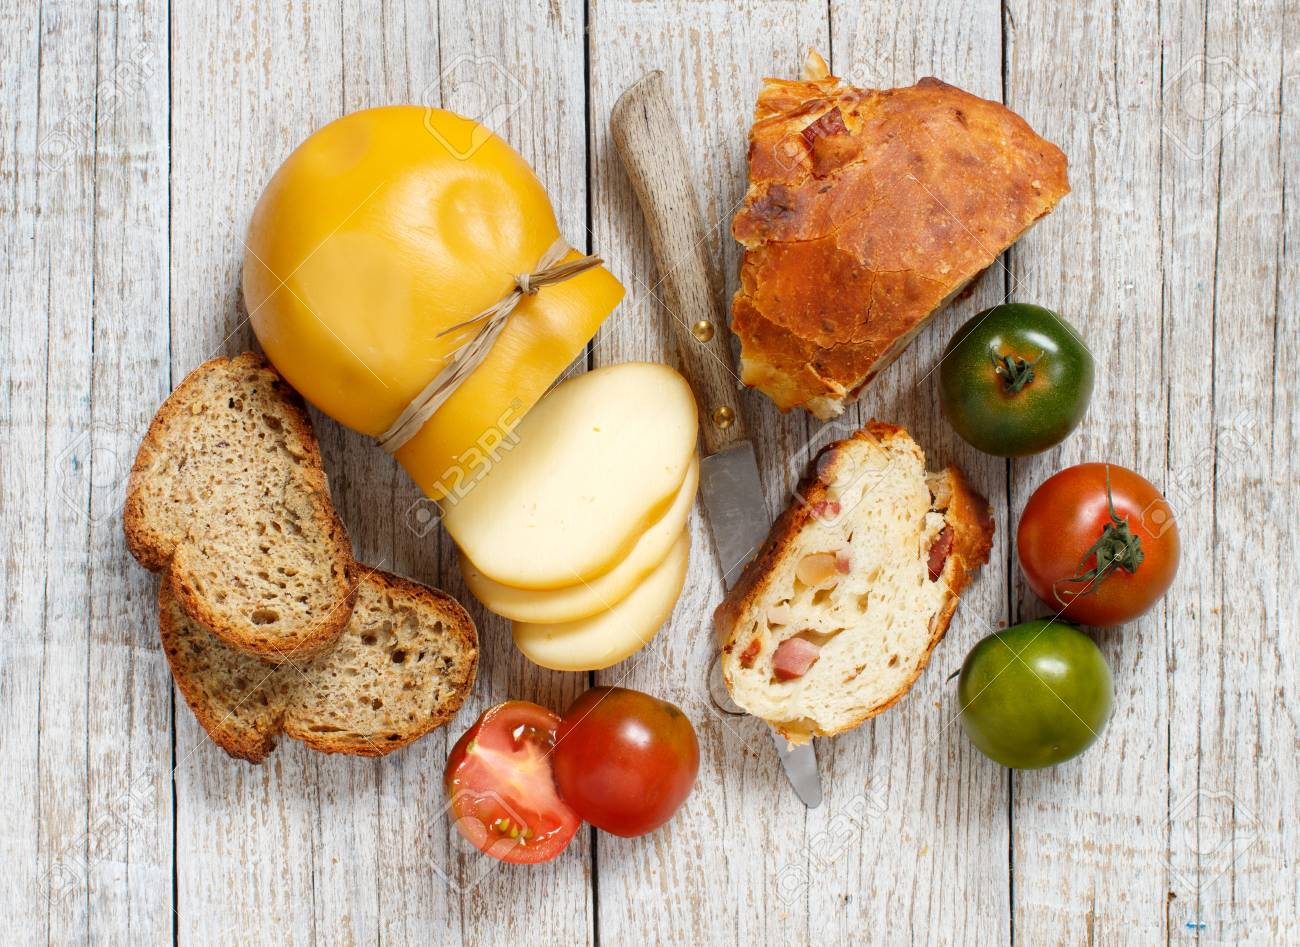 Scamorza cheese, tomatoes and bread on a wooden table Archivio Fotografico - 75336109